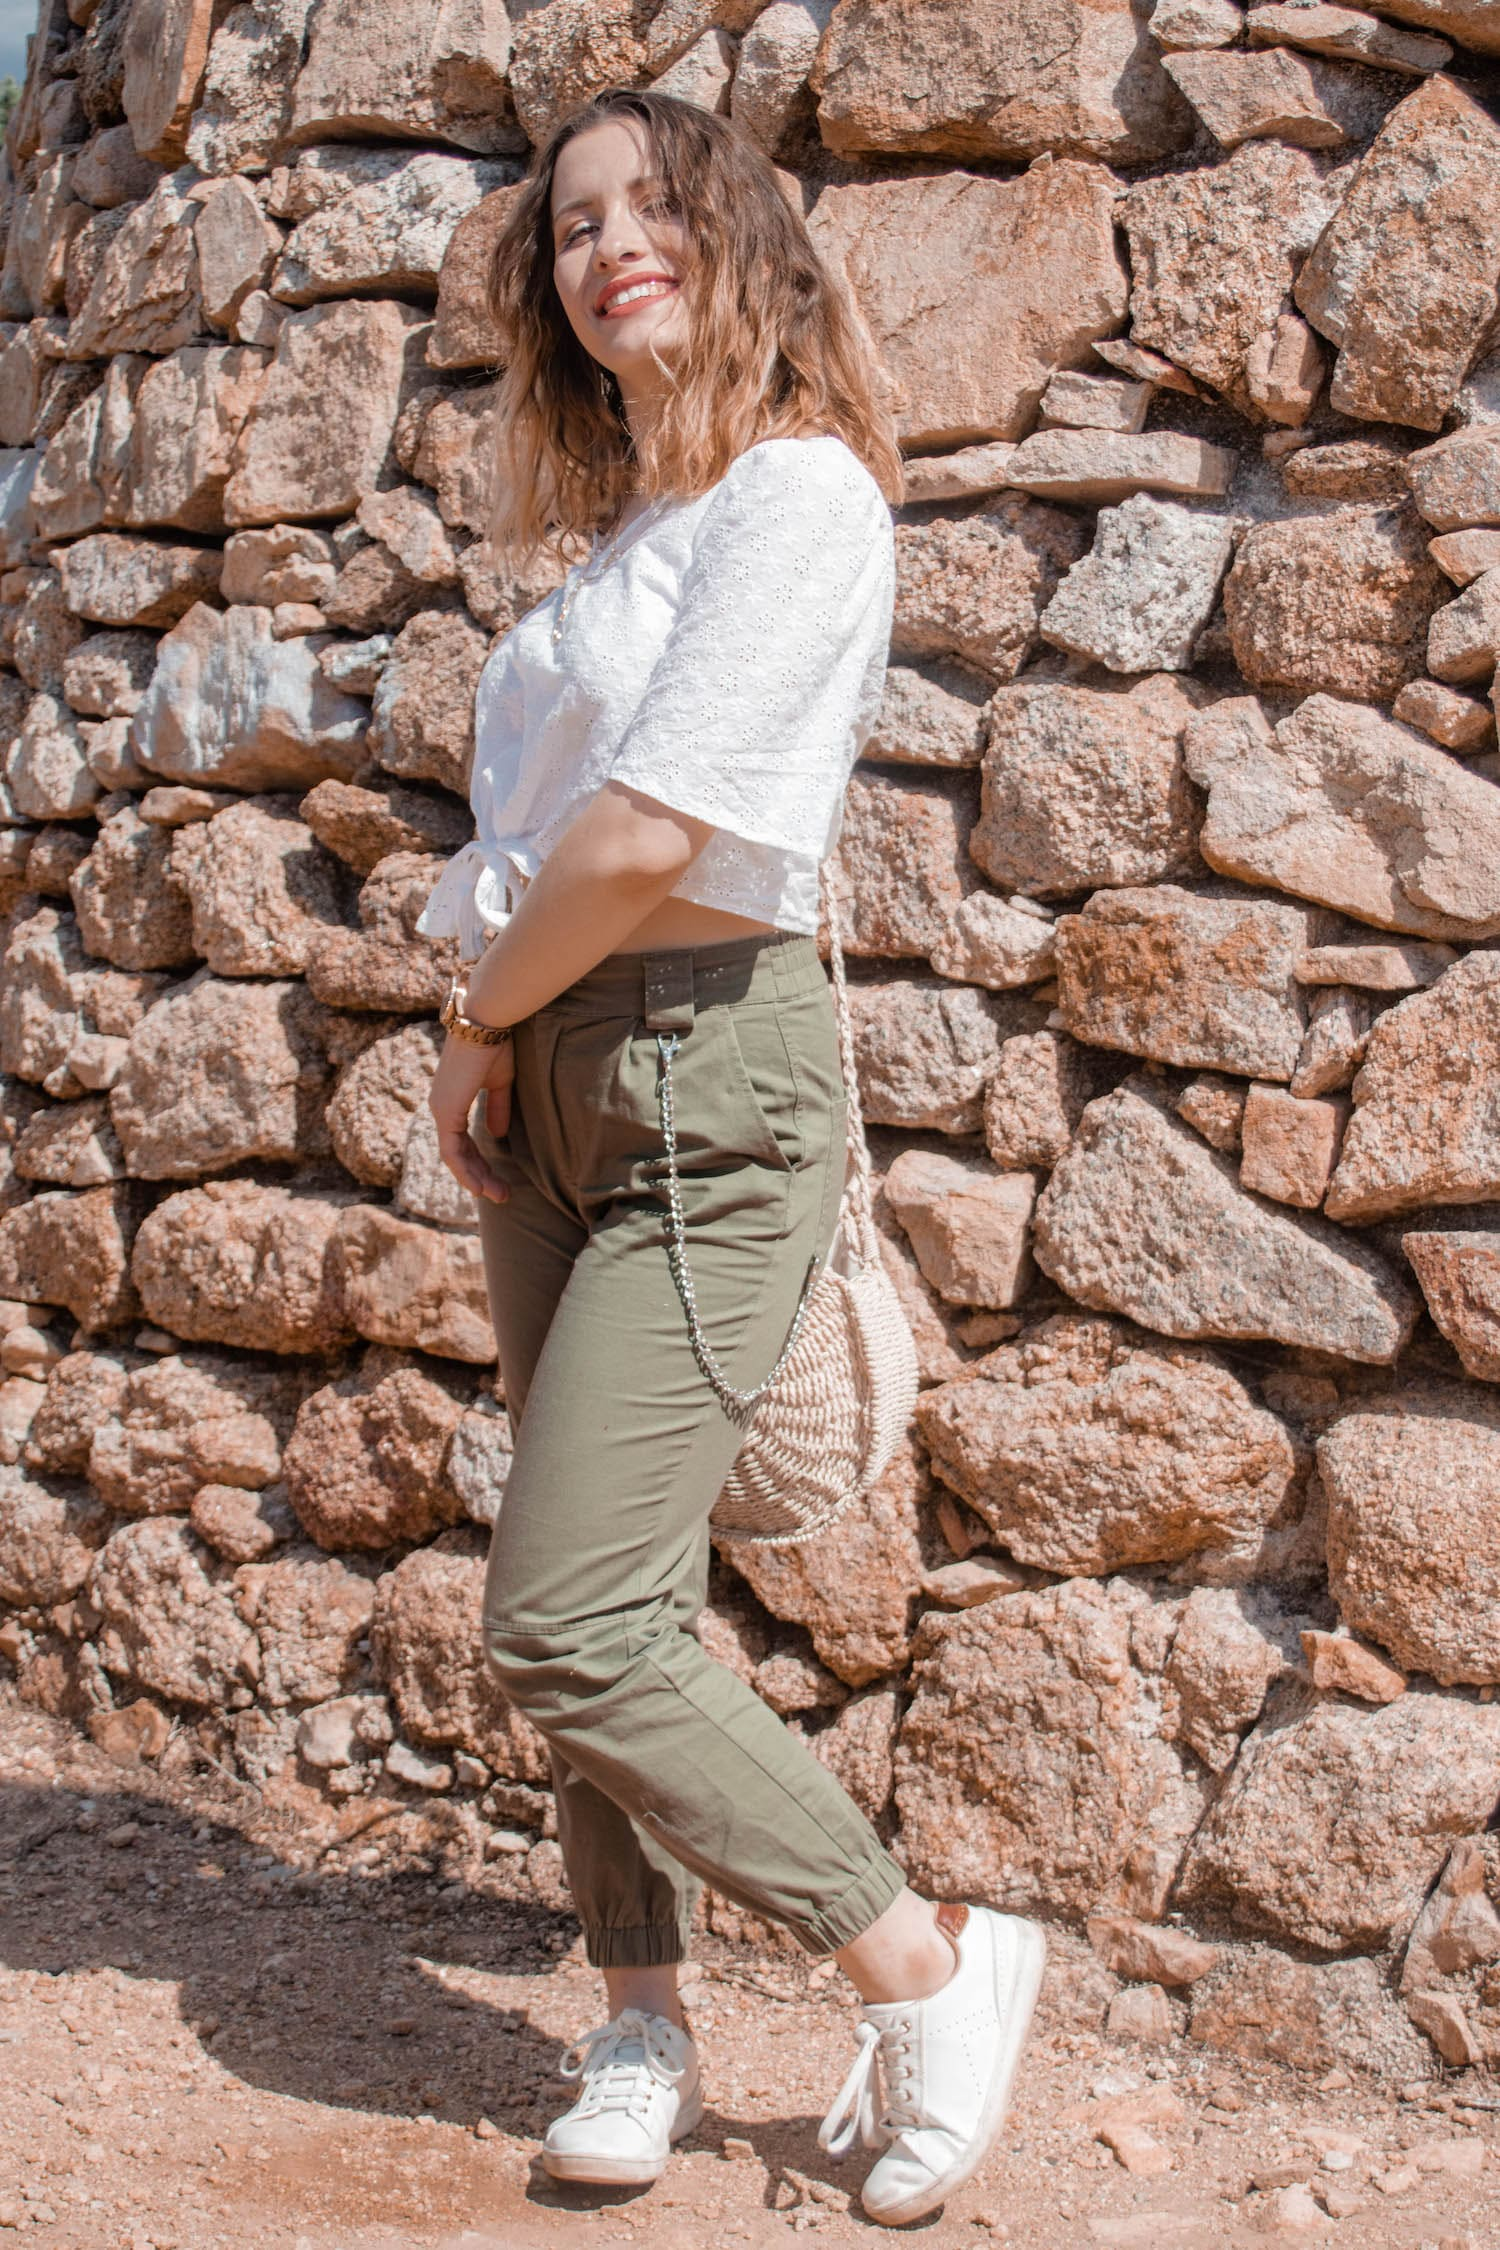 Comment porter le pantalon cargo ? - happinesscoco.com